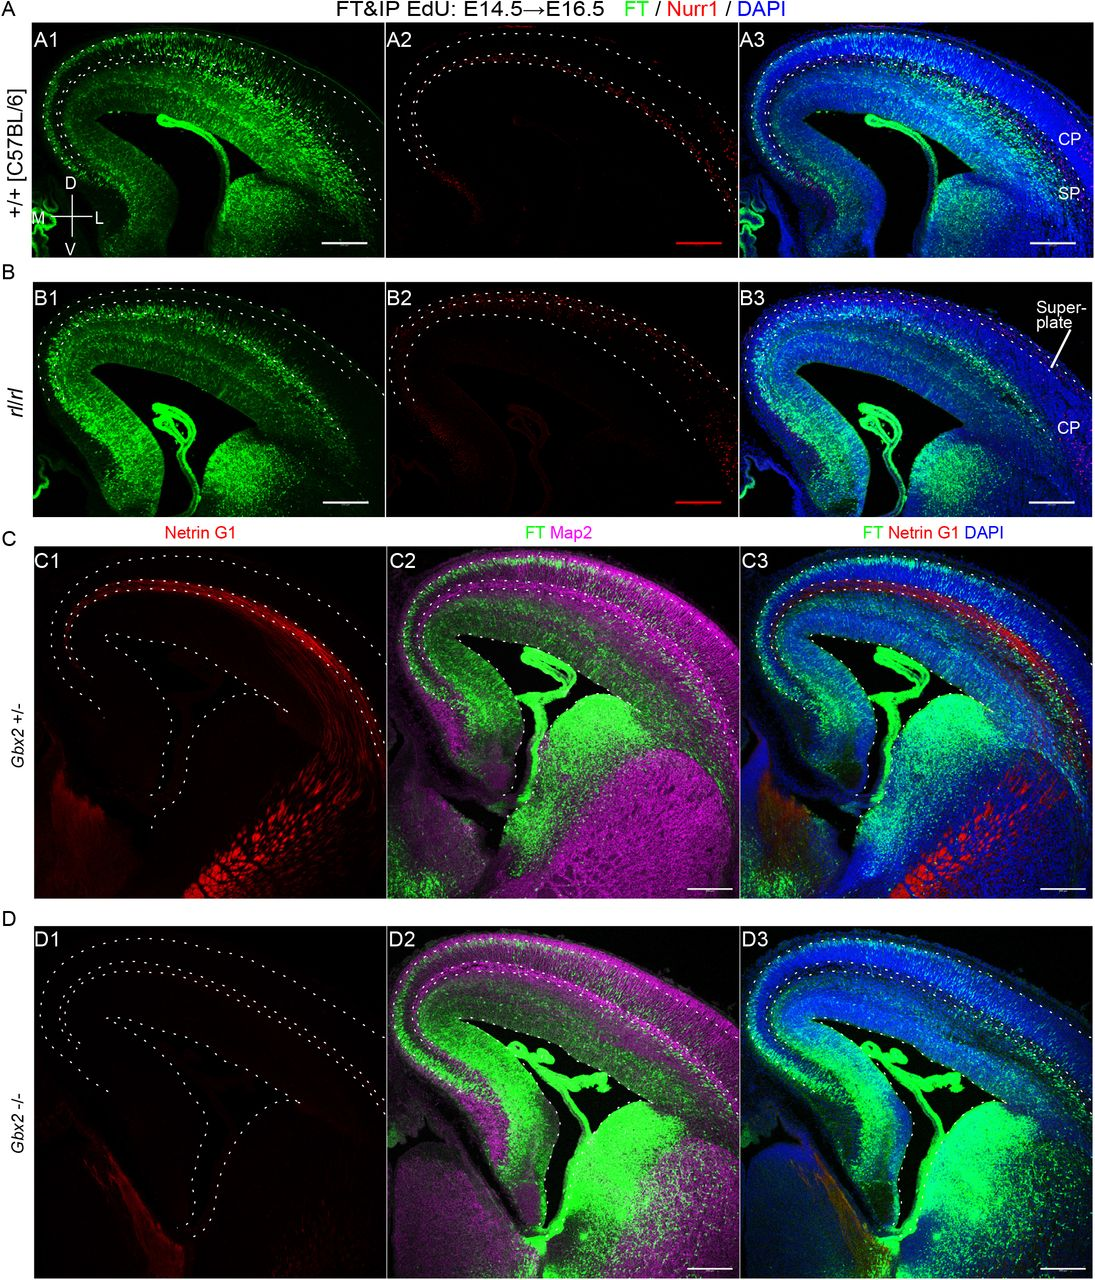 Regional differences in neuronal migration in reeler mutants and Gbx2 -/- mice. A-B: In wildtype brains, Nurr1+ cells were observed in the SP (A), while in reeler mice, Nurr1+ cells were mostly observed in the superplate, or beneath the meninges (B). In contrast to wildtype mice clearly showing regional differences in neuronal migration (A), regional differences were not clear in reeler mice (B). FT was performed at E14.5 and fixed at E16.5. C-D: In Gbx2 +/- brain, Netrin G1-positive thalamocortical axons run the SP (C1). In Gbx2 -/- brain, Netrin G1-positive thalamocortical axons were almost absent in the cortex (C2). In both cases, many neurons were observed just beneath the SP. FT was performed at E14.5 and fixed 50 hour later. Coronal sections slightly caudal to the main part of the interventricular foramina were shown to evaluate the thalamus at the same sections. DAPI, 4',6-diamidino-2-phenylindole; FT, FlashTag; VZ, ventricular zone; MAZ, multipolar cell accumulation zone; IZ, intermediate zone; SP, subplate; CP, cortical plate; M, medial; L, lateral; D, dorsal; V, ventral. Scale bars, 200 μm.